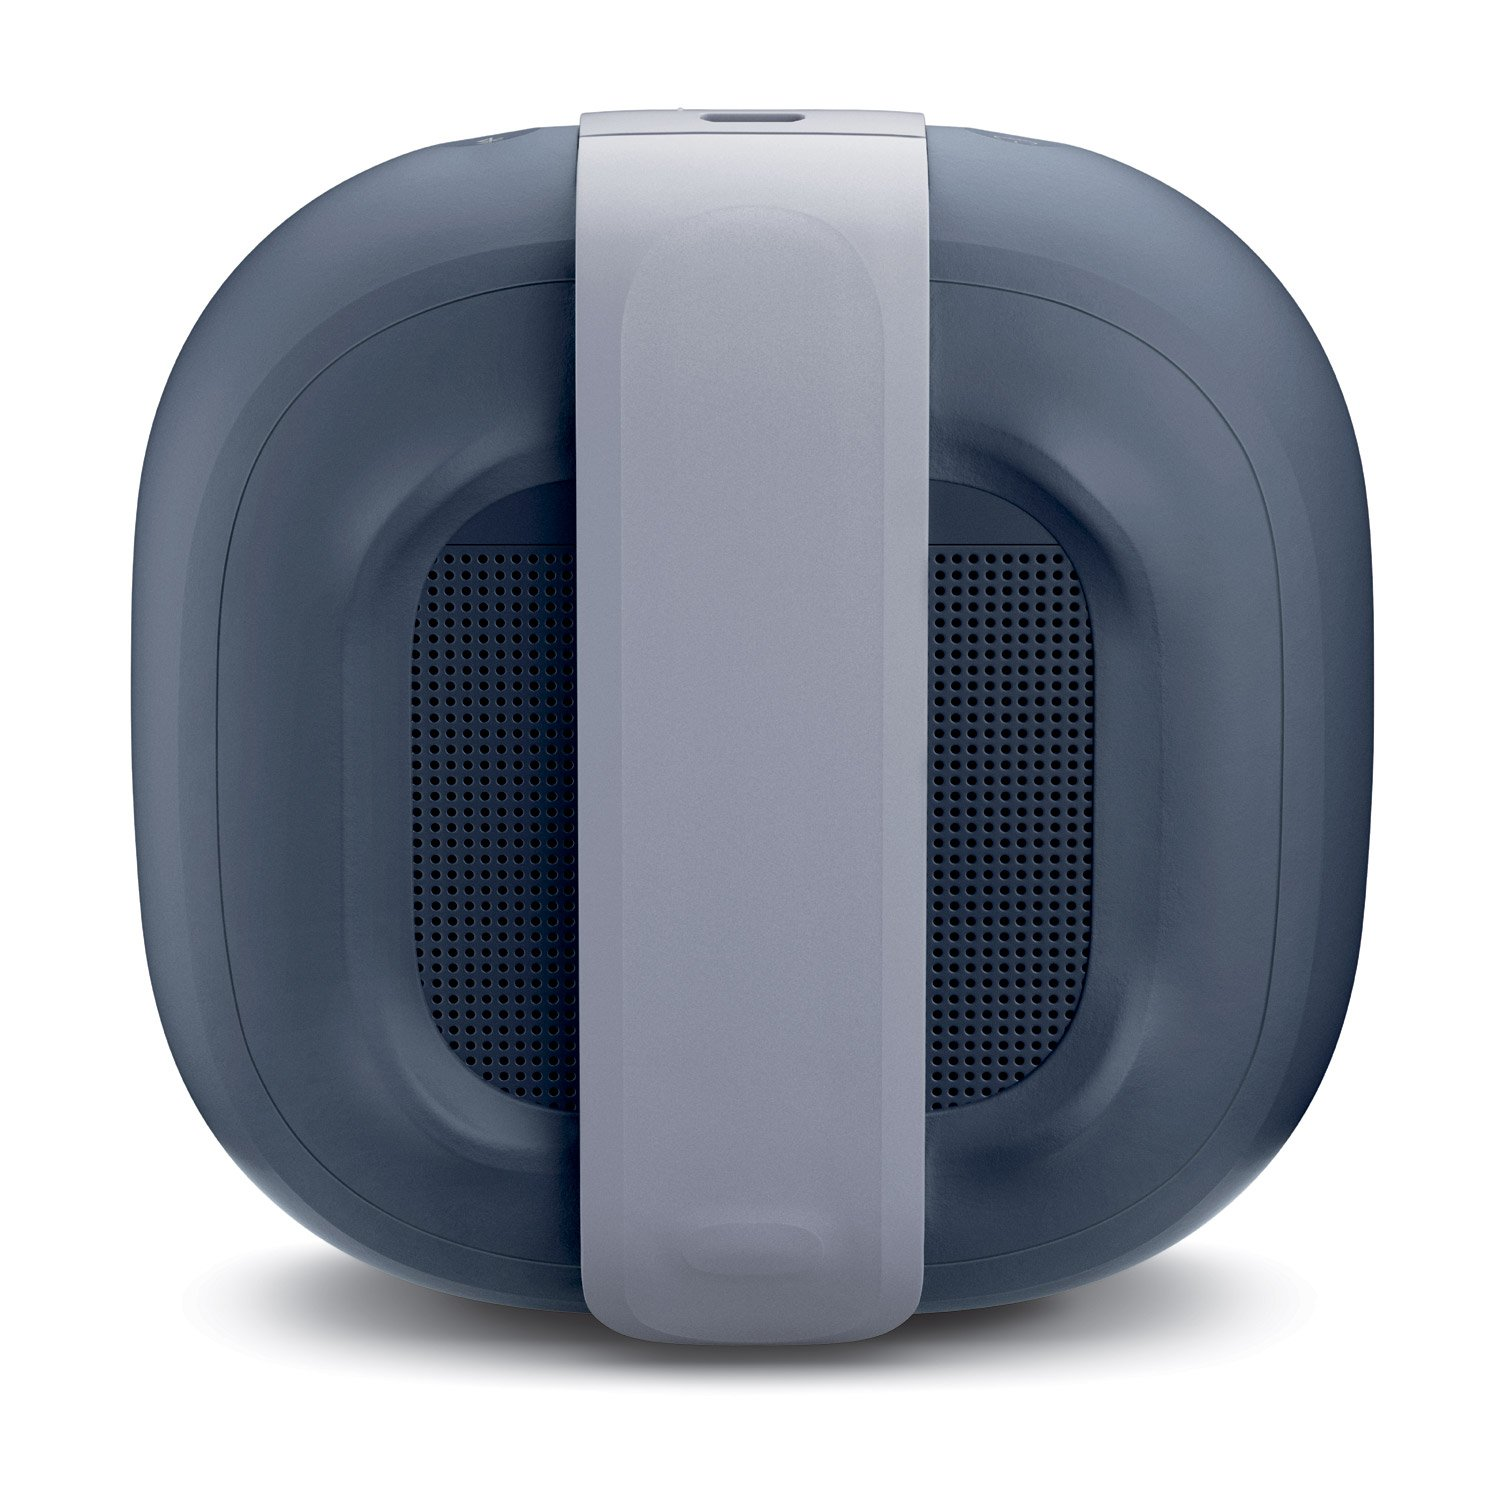 Bose SoundLink Micro Waterproof Bluetooth Speaker, Midnight Blue, with Bose Wall Charger by Bose (Image #4)